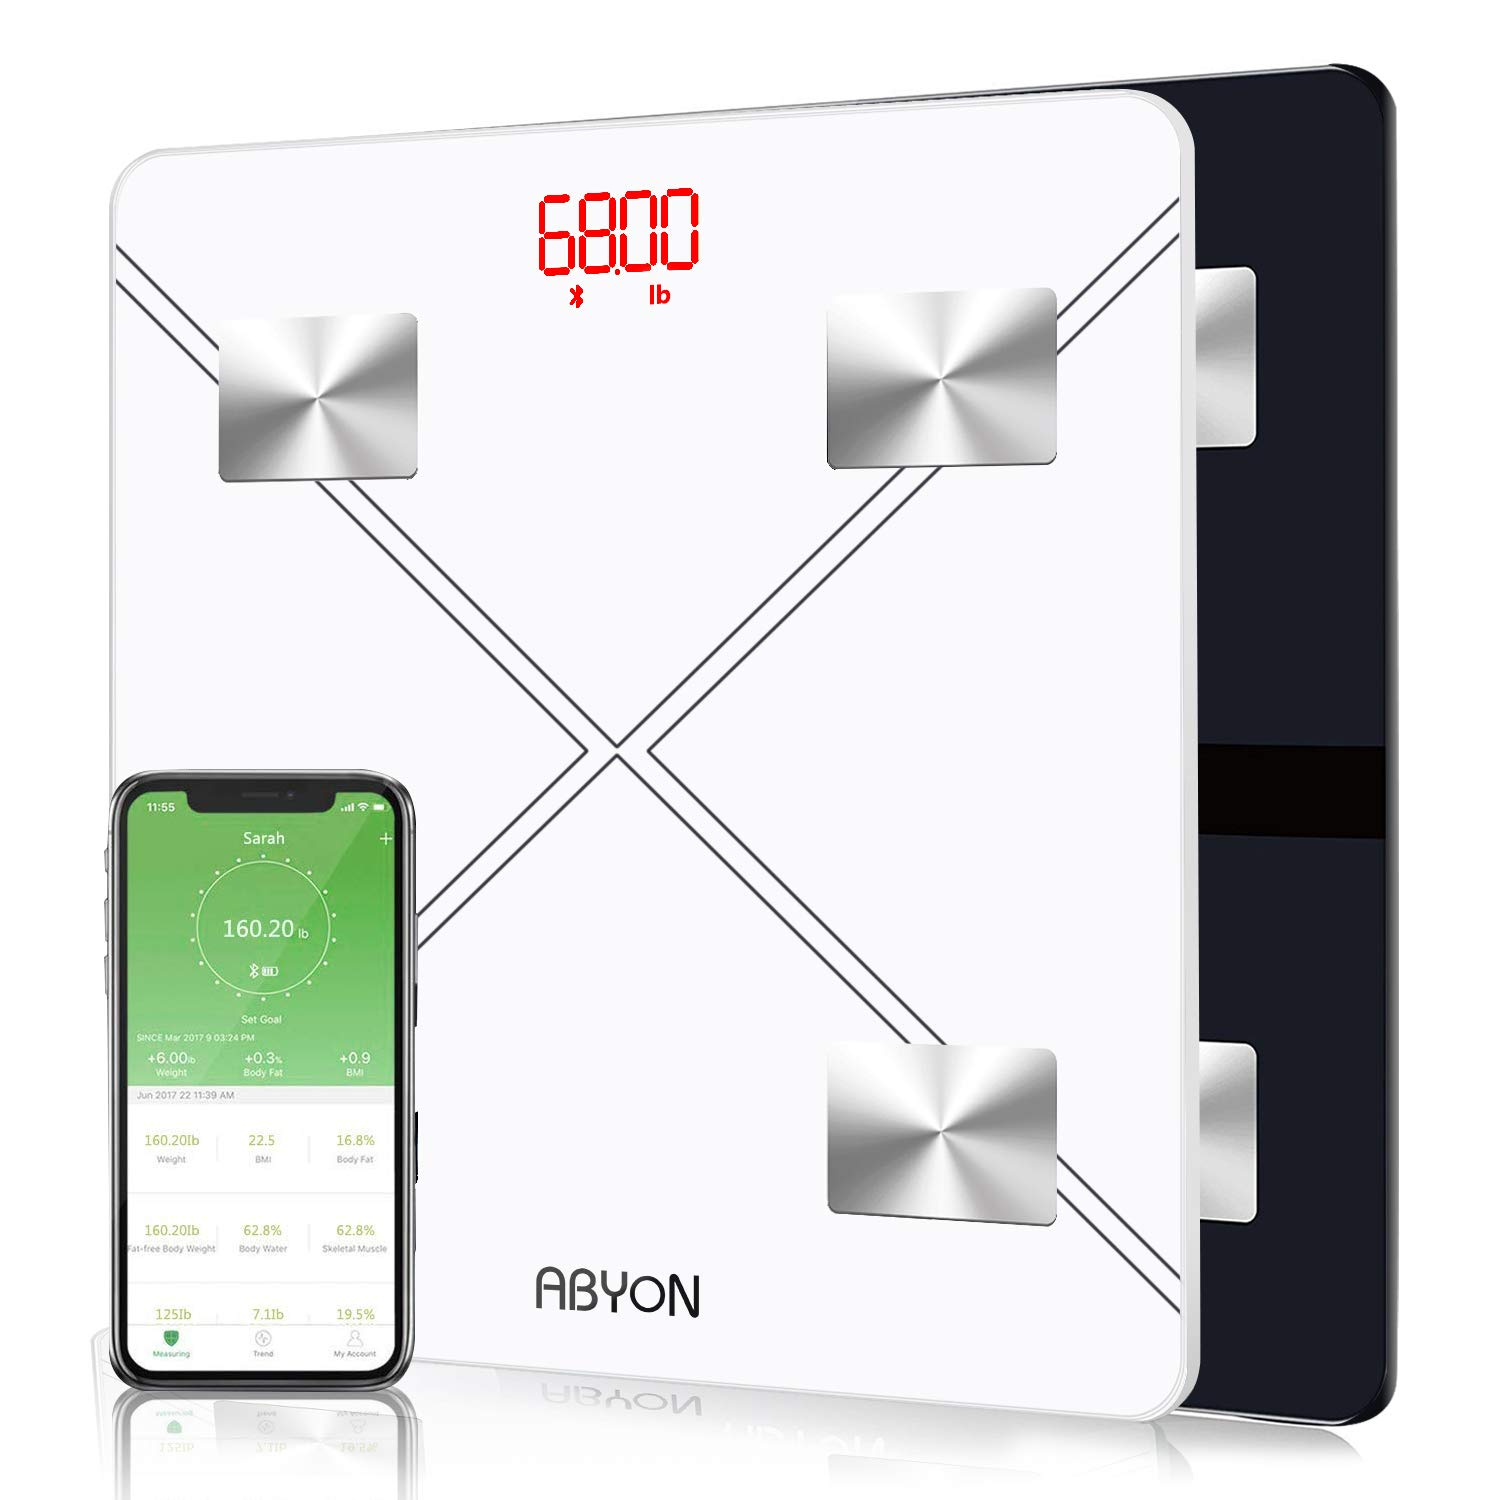 (2 PCS) Bluetooth Smart Scales Digital Weight and Body Fat Scale - Body Composition Analyzer with Smartphone APP Perfect for Your Fitness Journey,400 lbs by ABYON